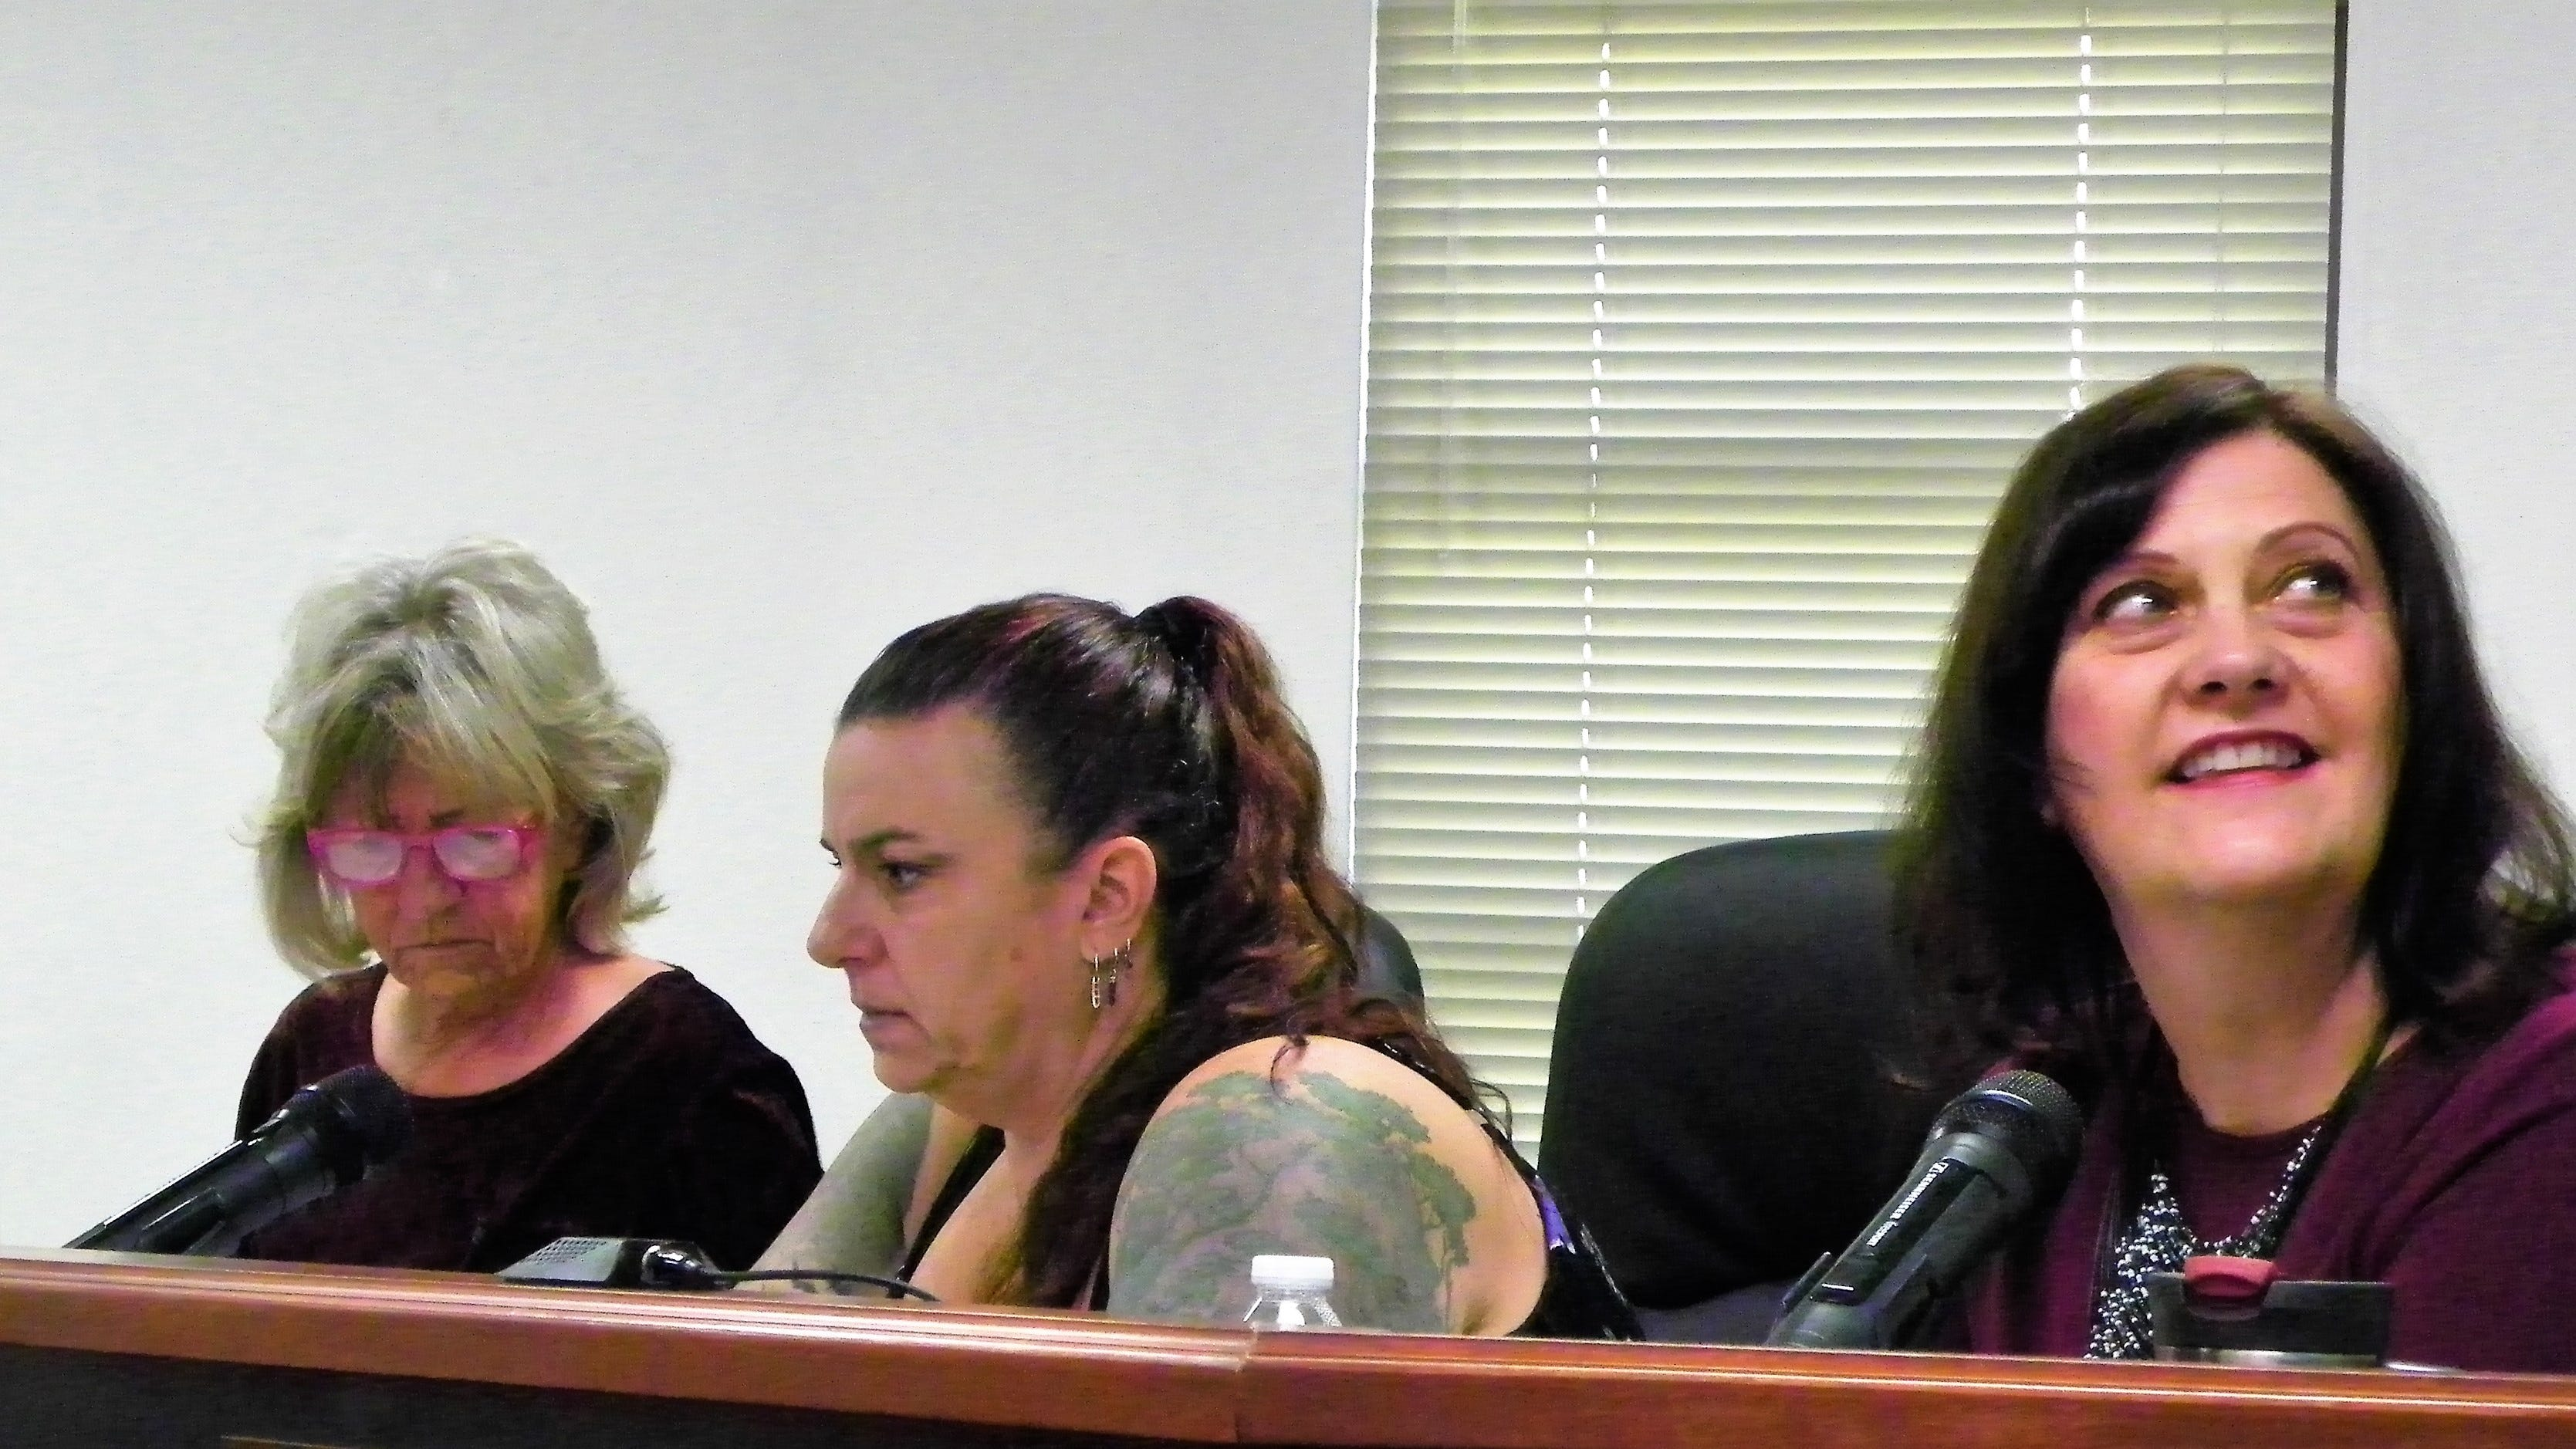 Otero County Vice-Chairwoman Susan Flores, right, looks at one of the flag mock-ups on the big monitor in the Otero County Commission Chambers Thursday while Otero County Commissioner Janet White, left and Otero County Commission Chairwoman Lori Bies look at Zia symbol possibilities.